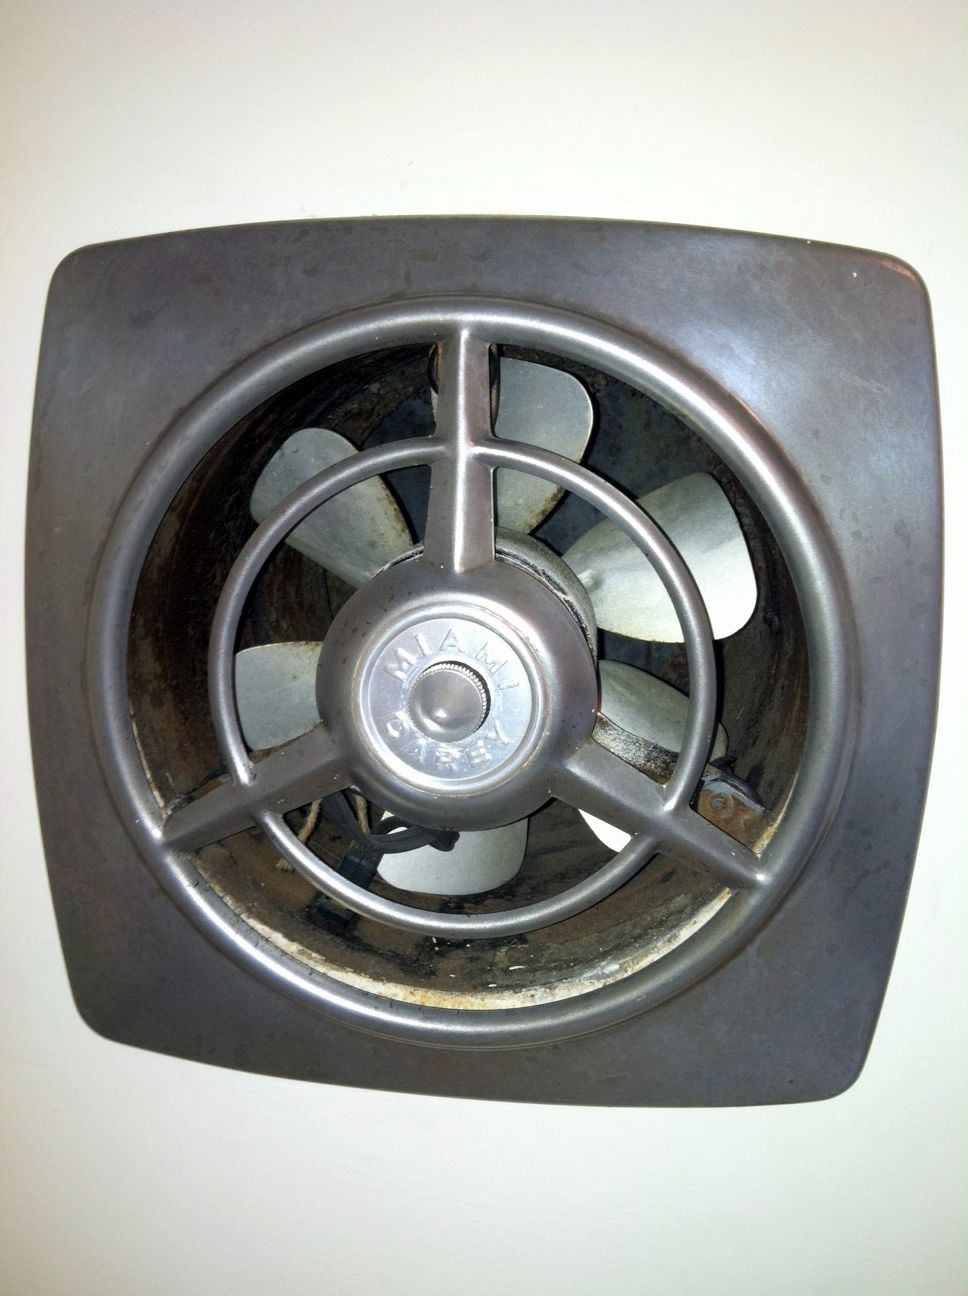 Wall mounted bathroom radio - Restored Vintage Miami Carey Kitchen Vent Fan Unearthered From Layers Of Flat White Wall Paint